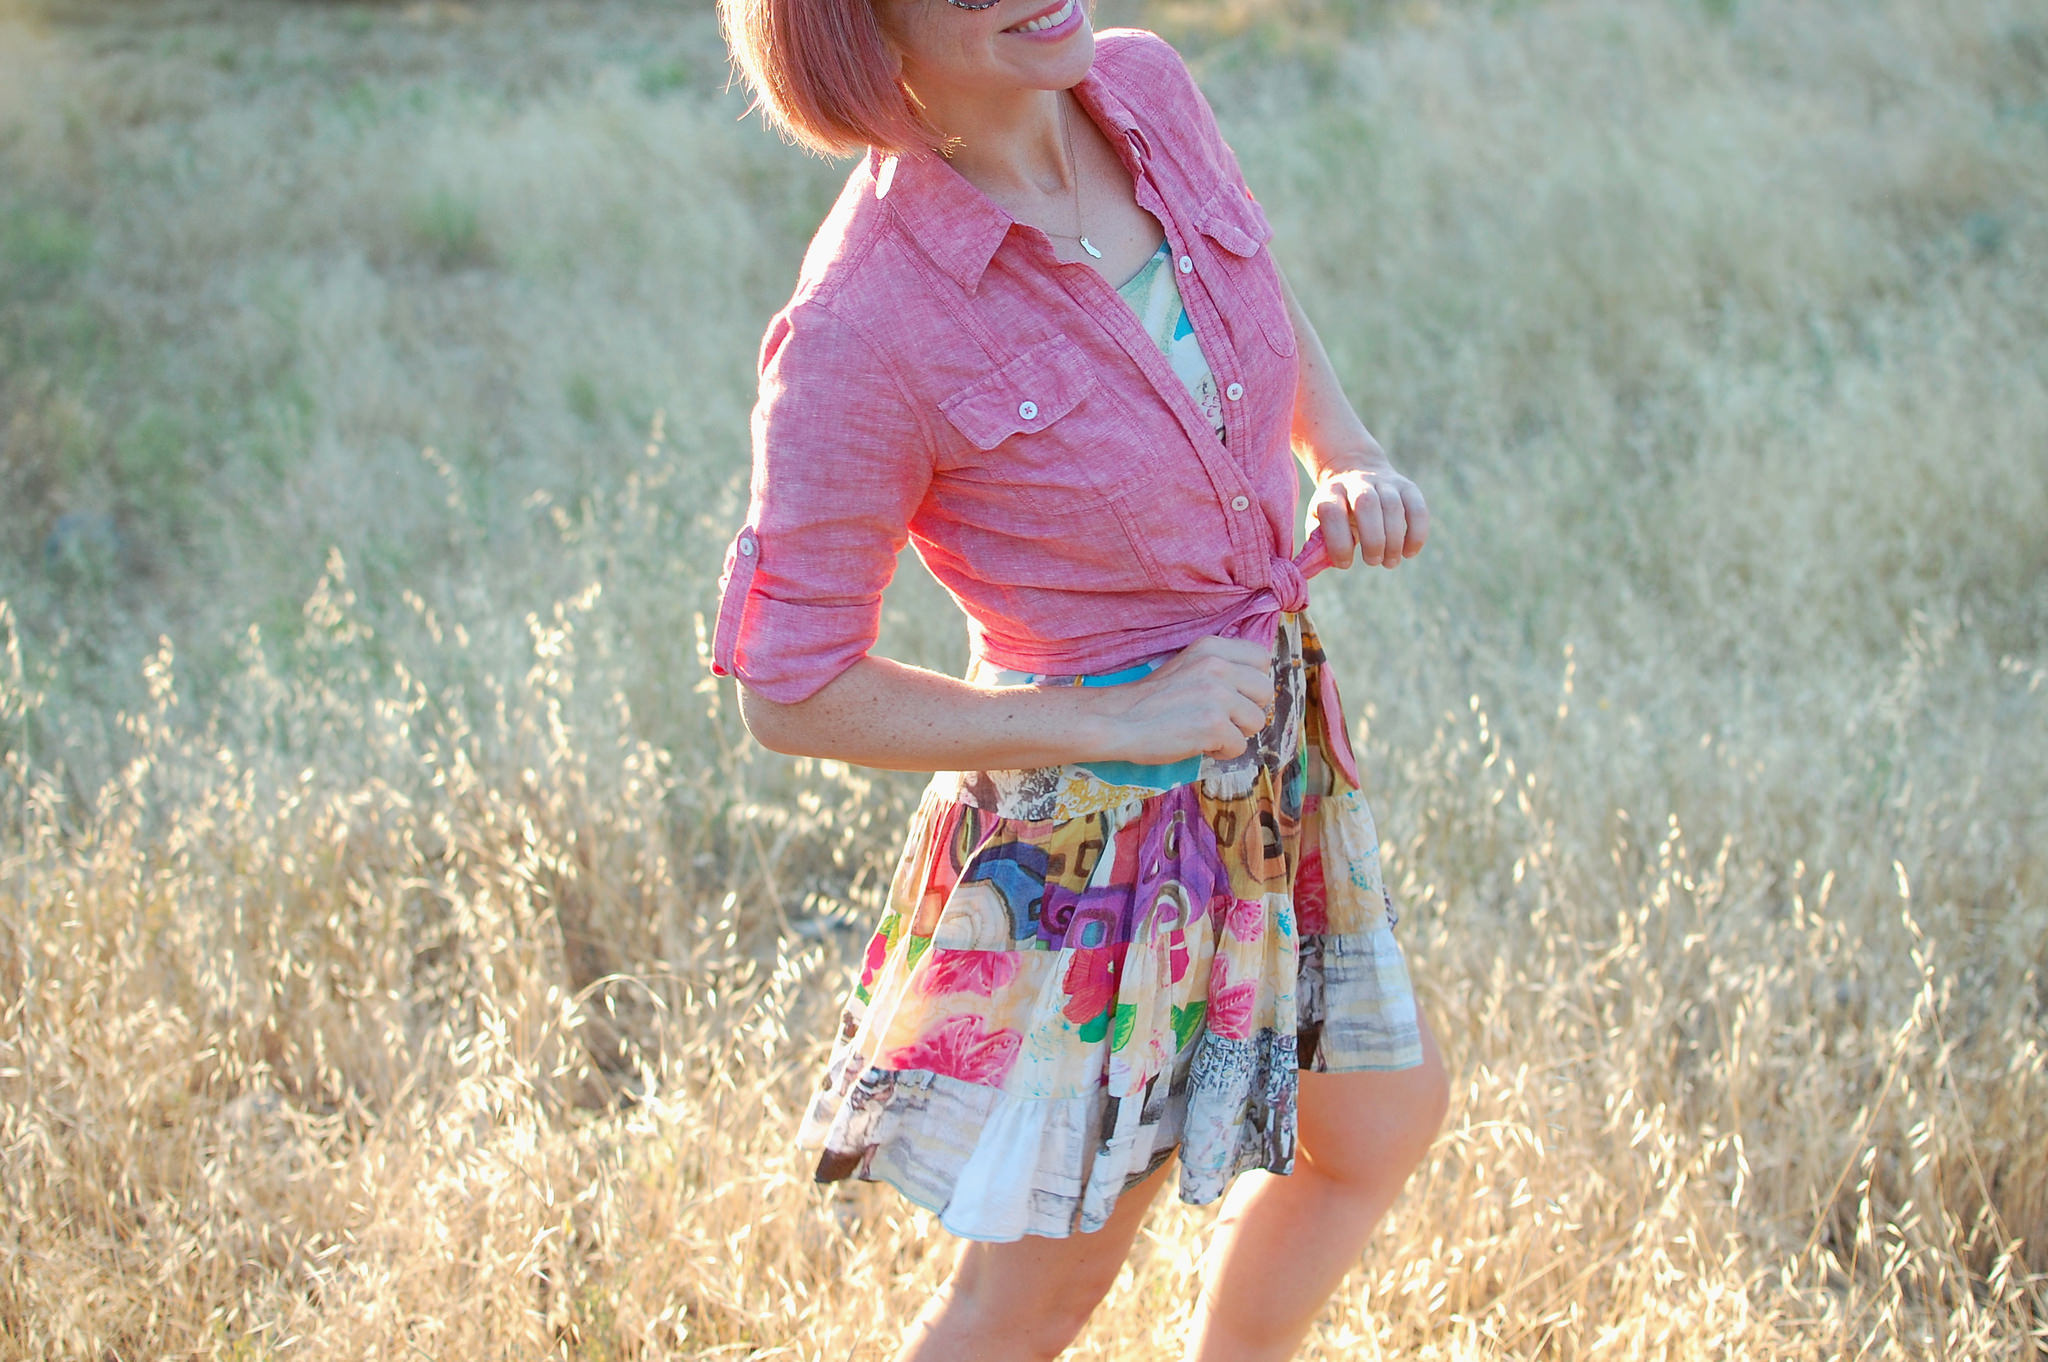 sunset pink knotted linen shirt daily outfit blog ootd whatiwore2day